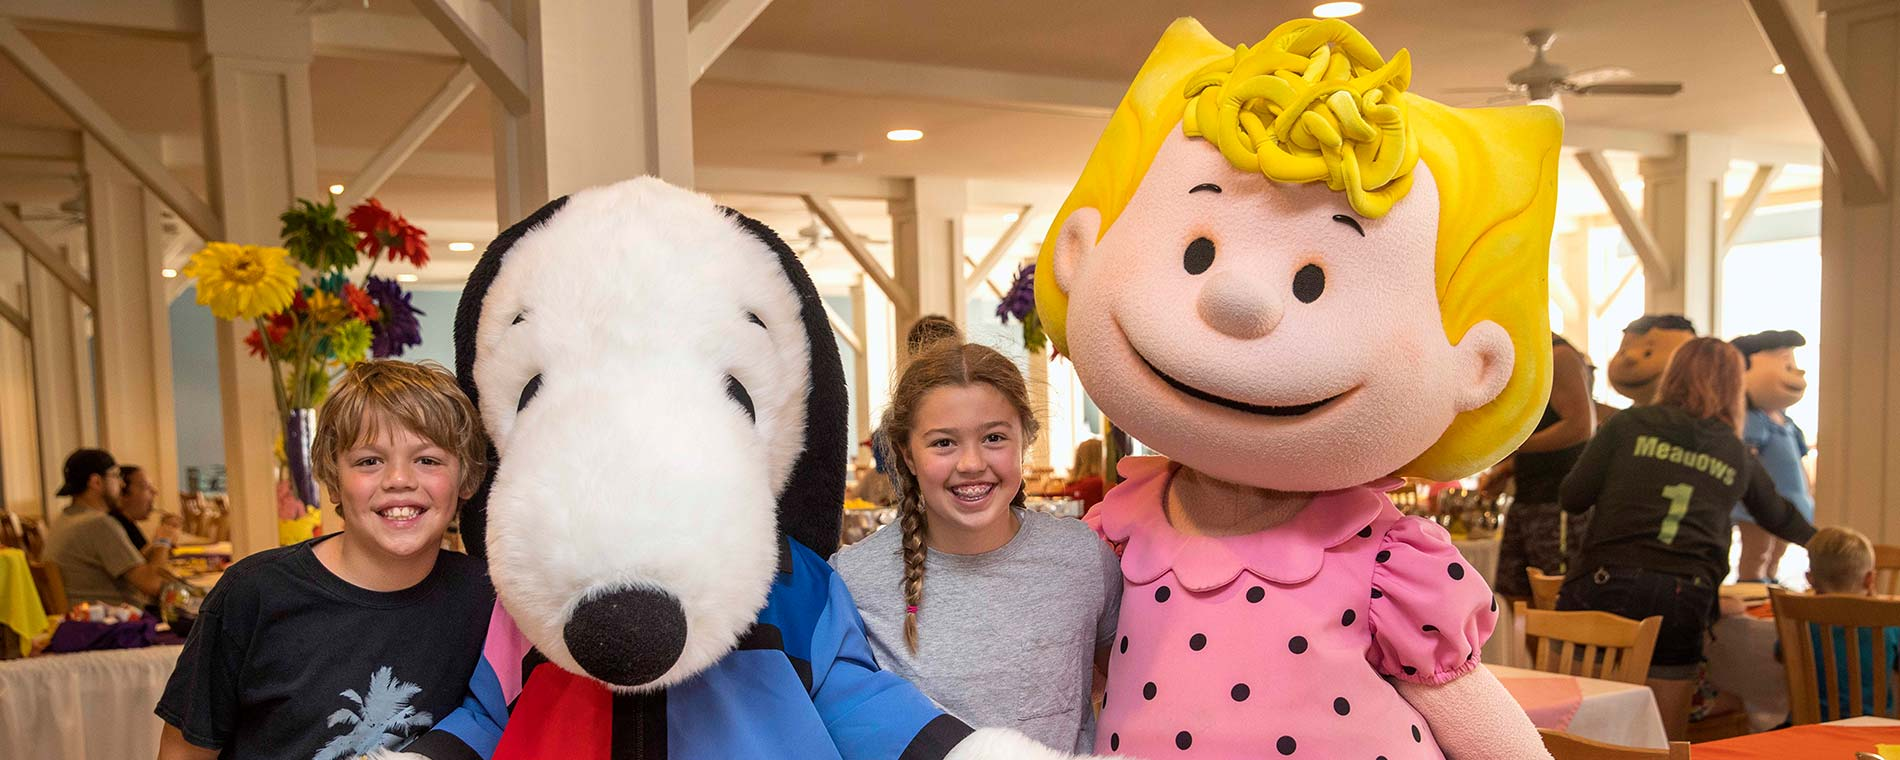 Breakfast Buffet with the PEANUTS Characters